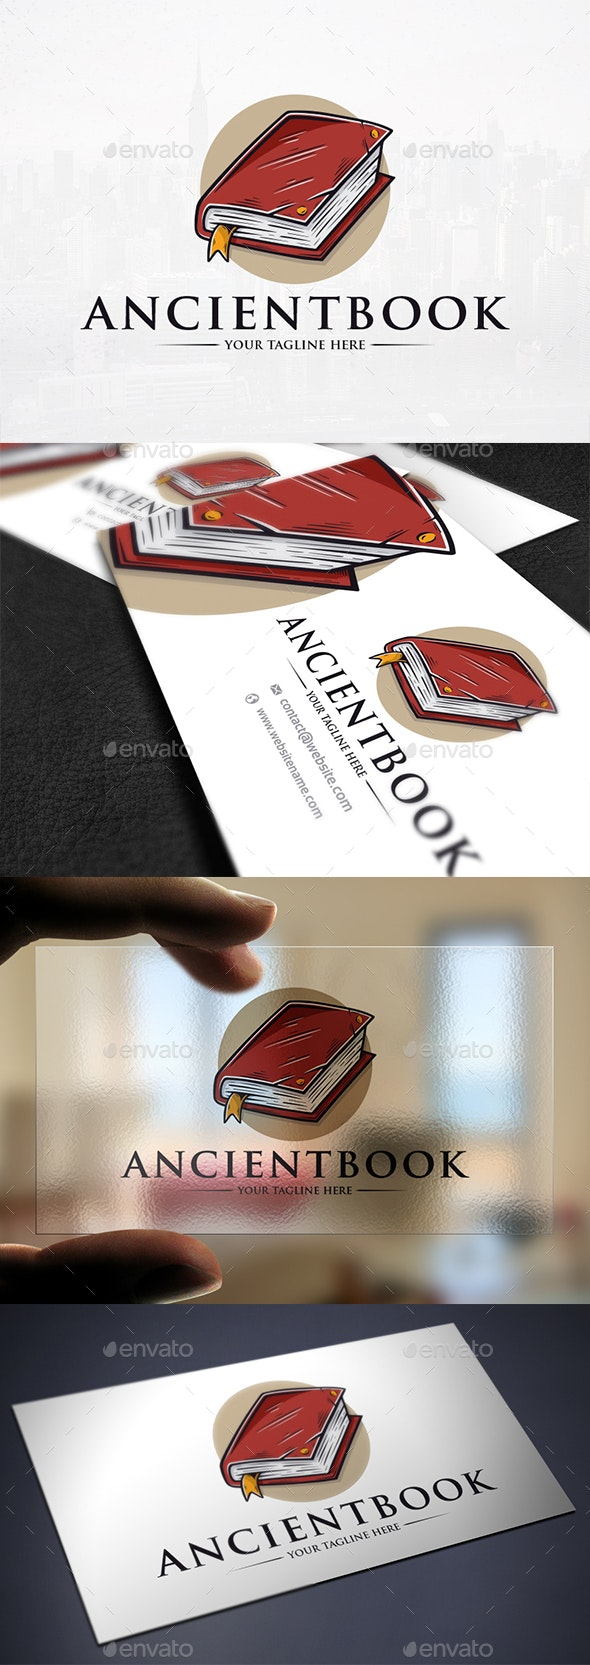 Ancient Book Logo Template - Objects Logo Templates